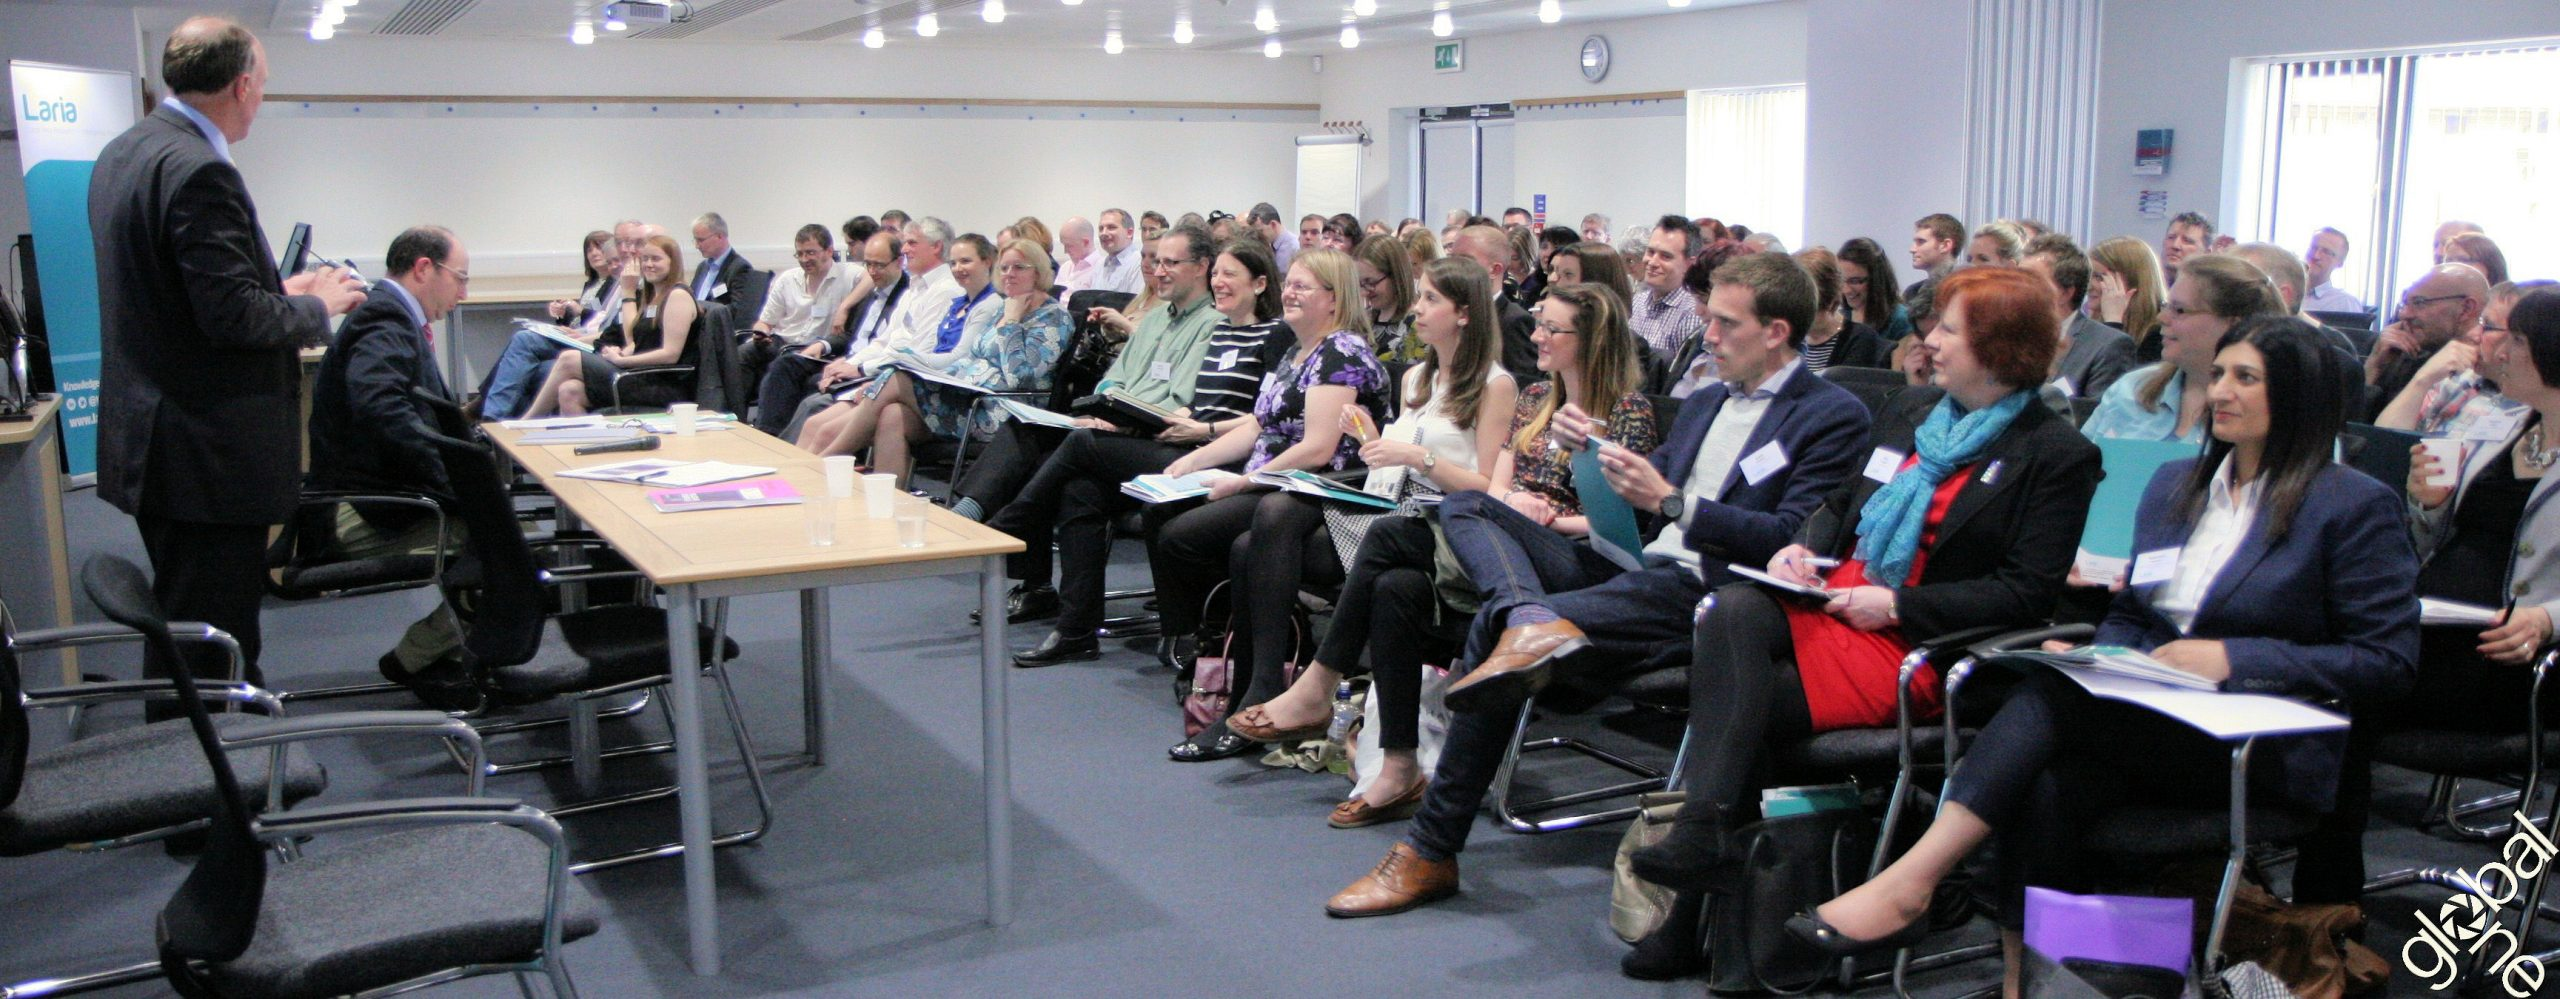 Conference Crowd 2014